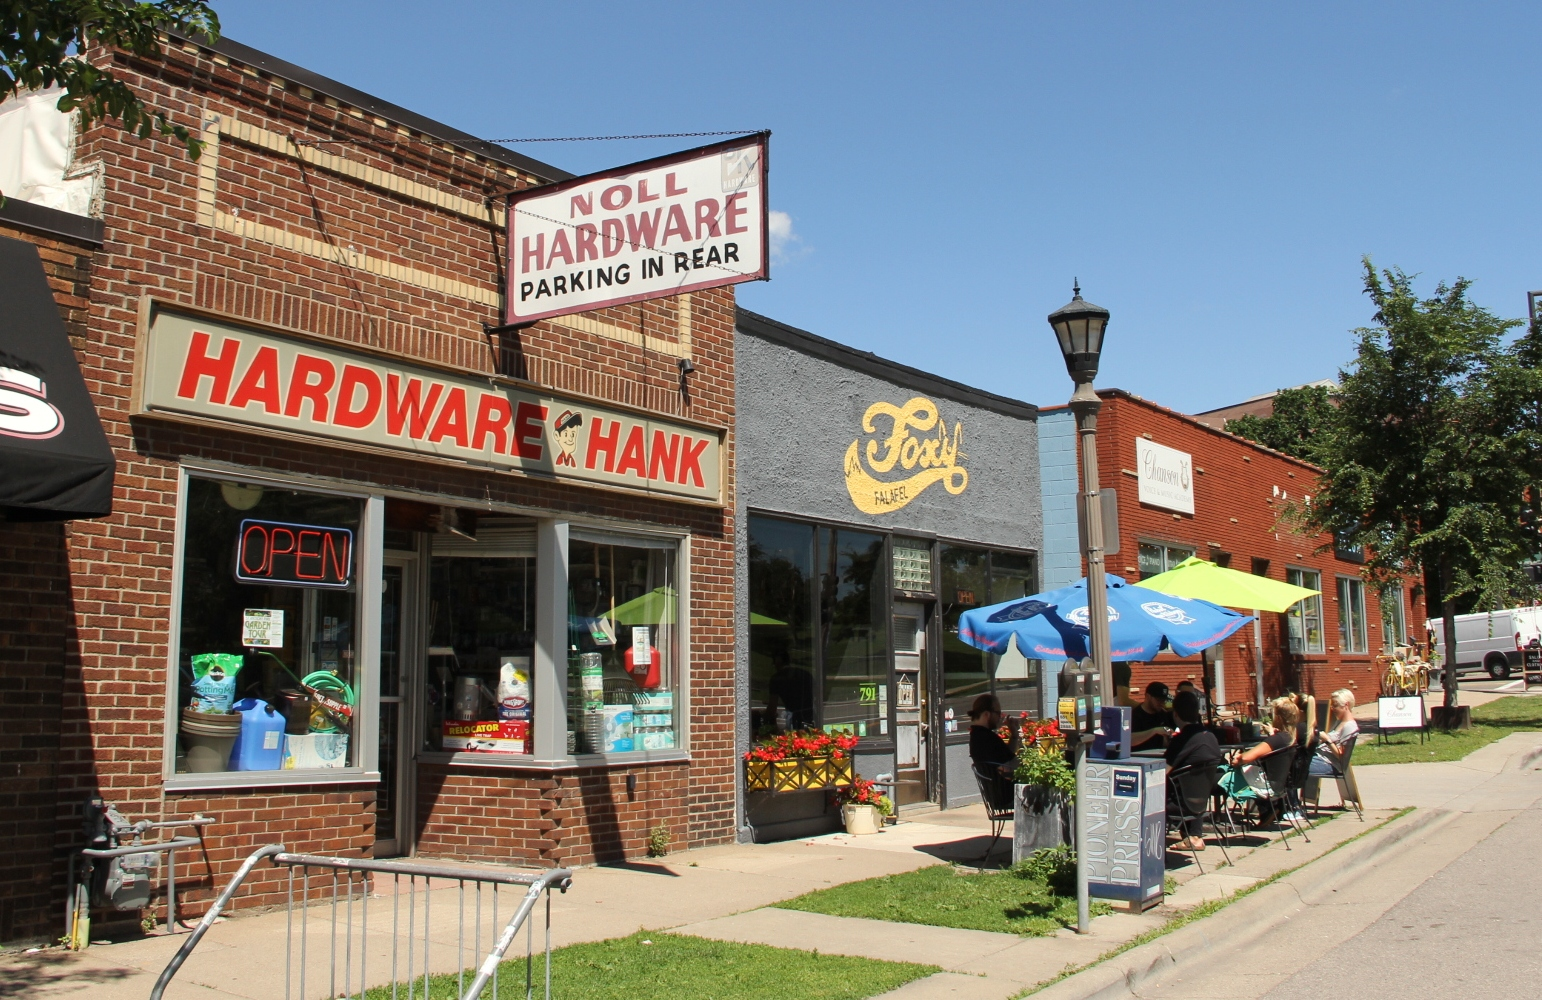 Noll Hardware storefront